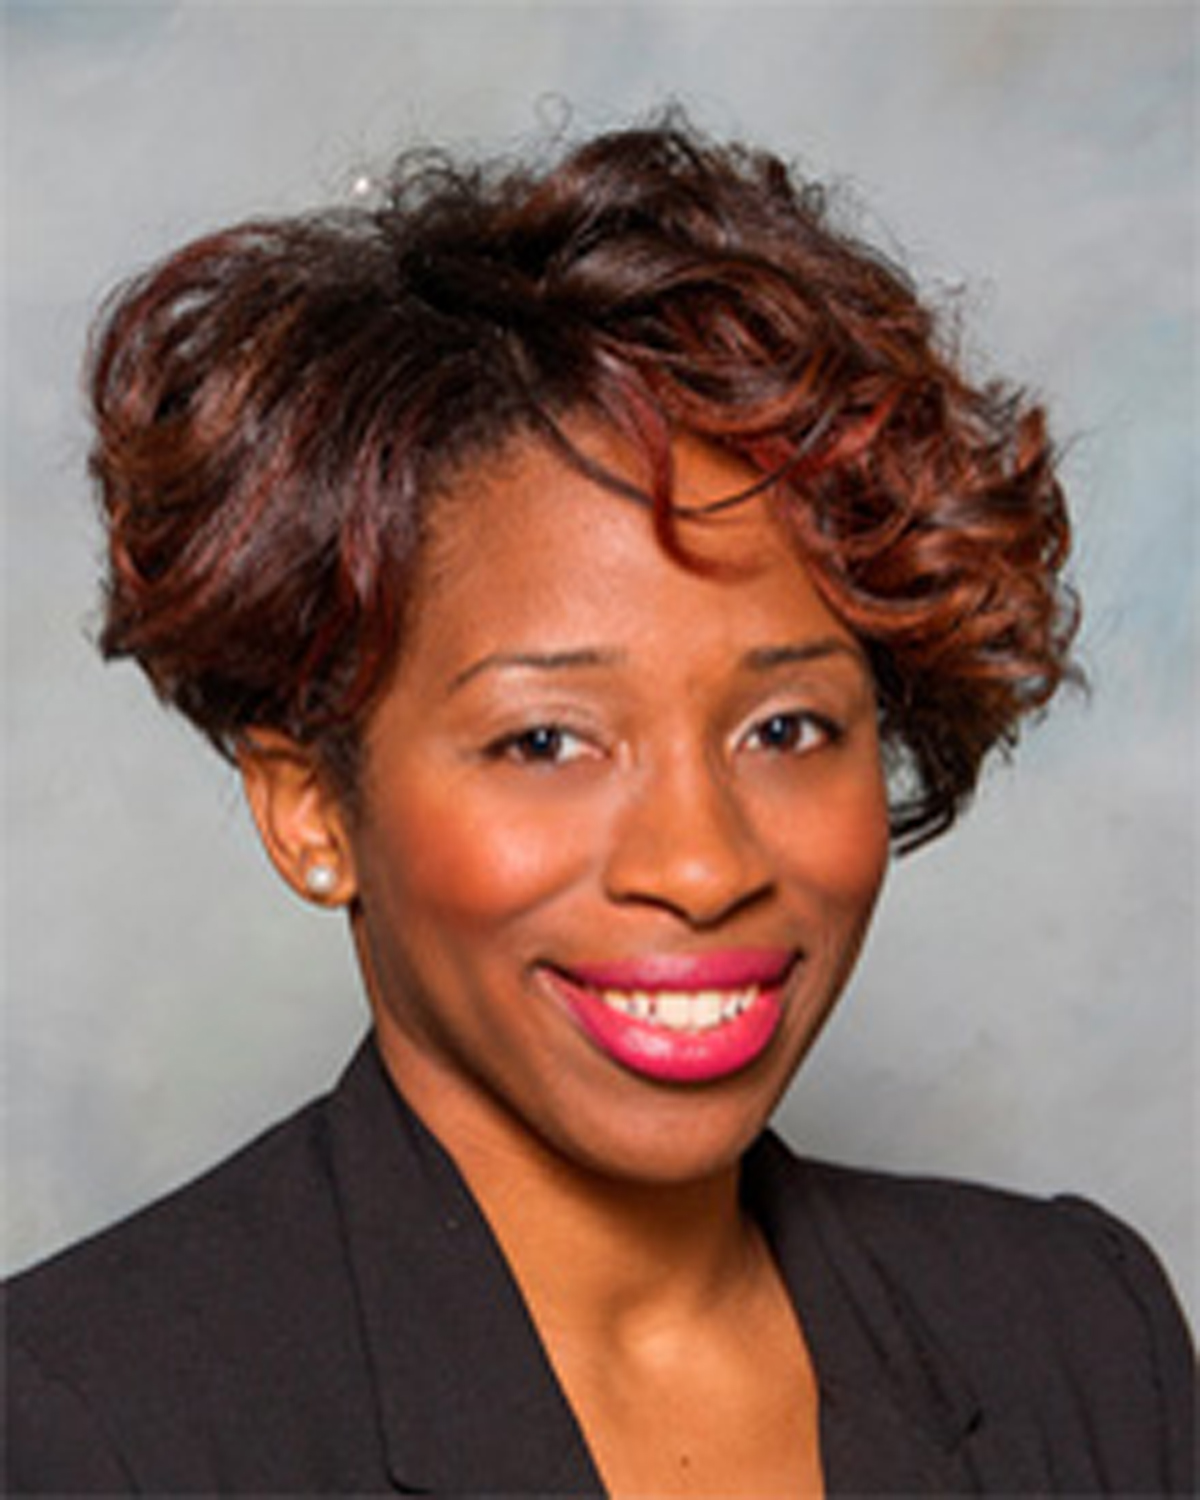 Sossena Wood's academic career was impacted by diversity programs in the Swanson School of Engineering such as Pitt Excel, where she served as a mentor, and the National Society of Black Engineers, where she served as the National Chairperson for Pitt's chapter.